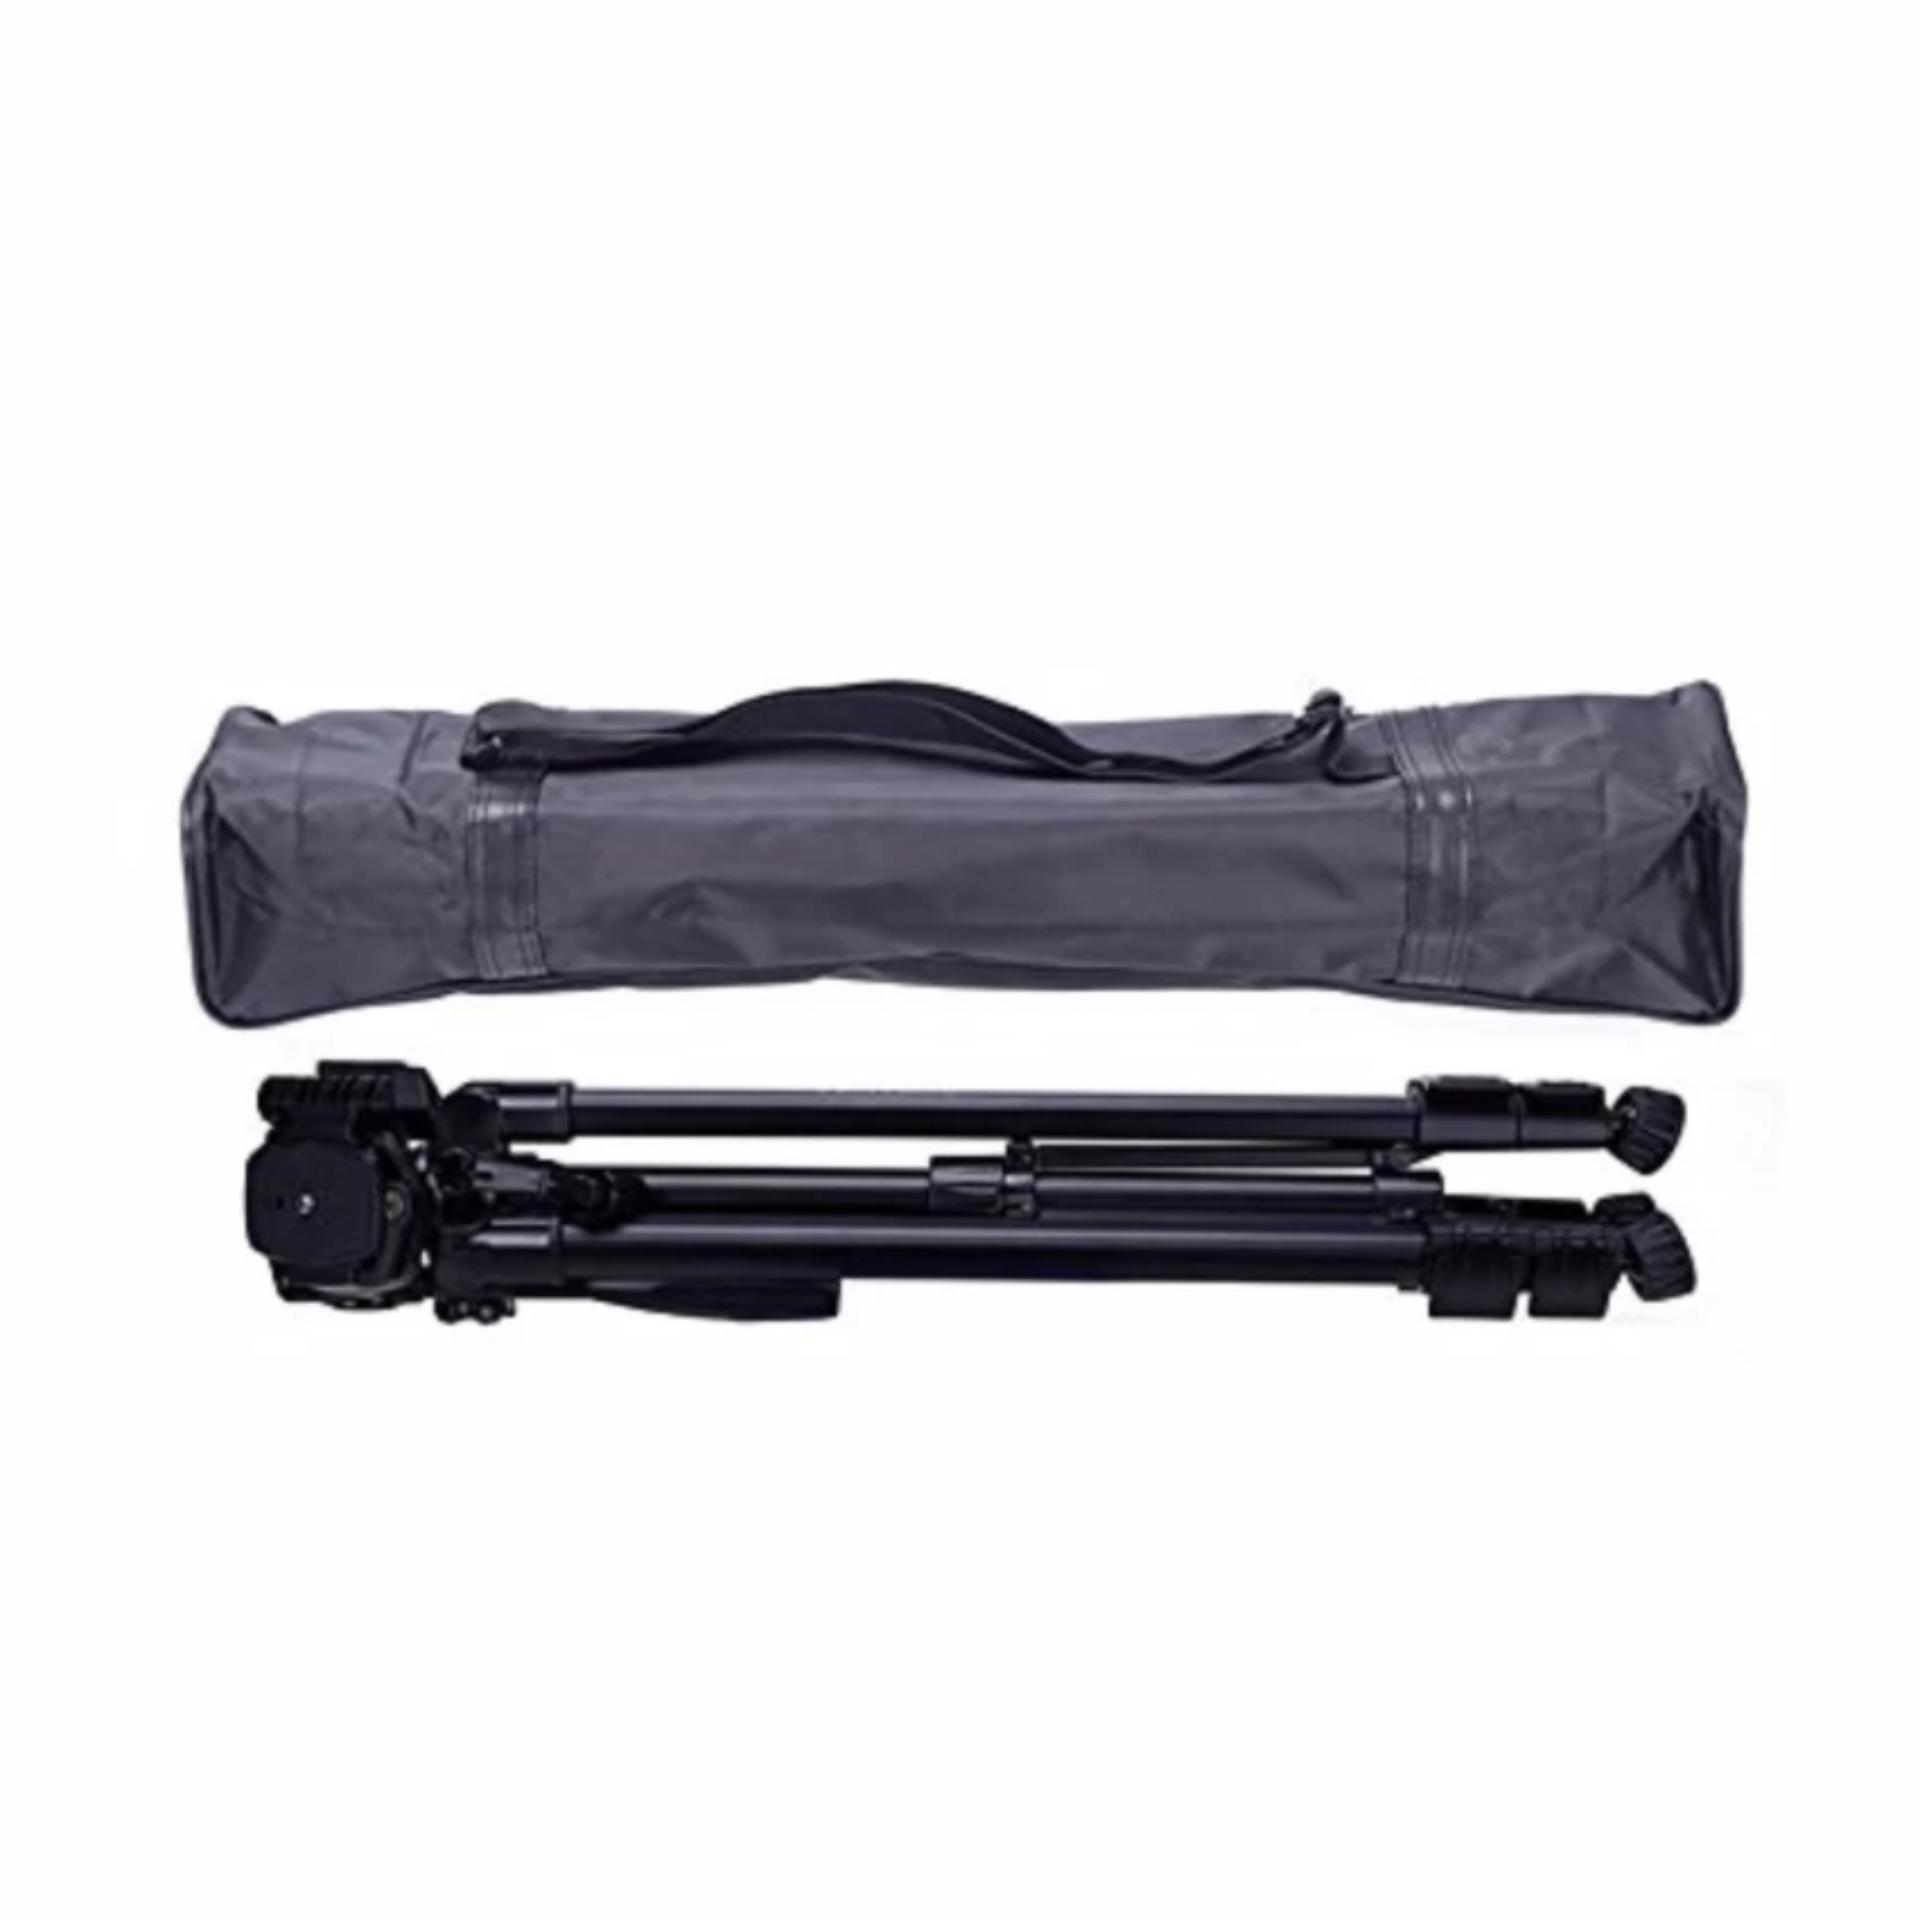 Philippines Yunteng 590 Vct Tripod With Damping Head For Canon Yt 880 Nikon Sony Samsung